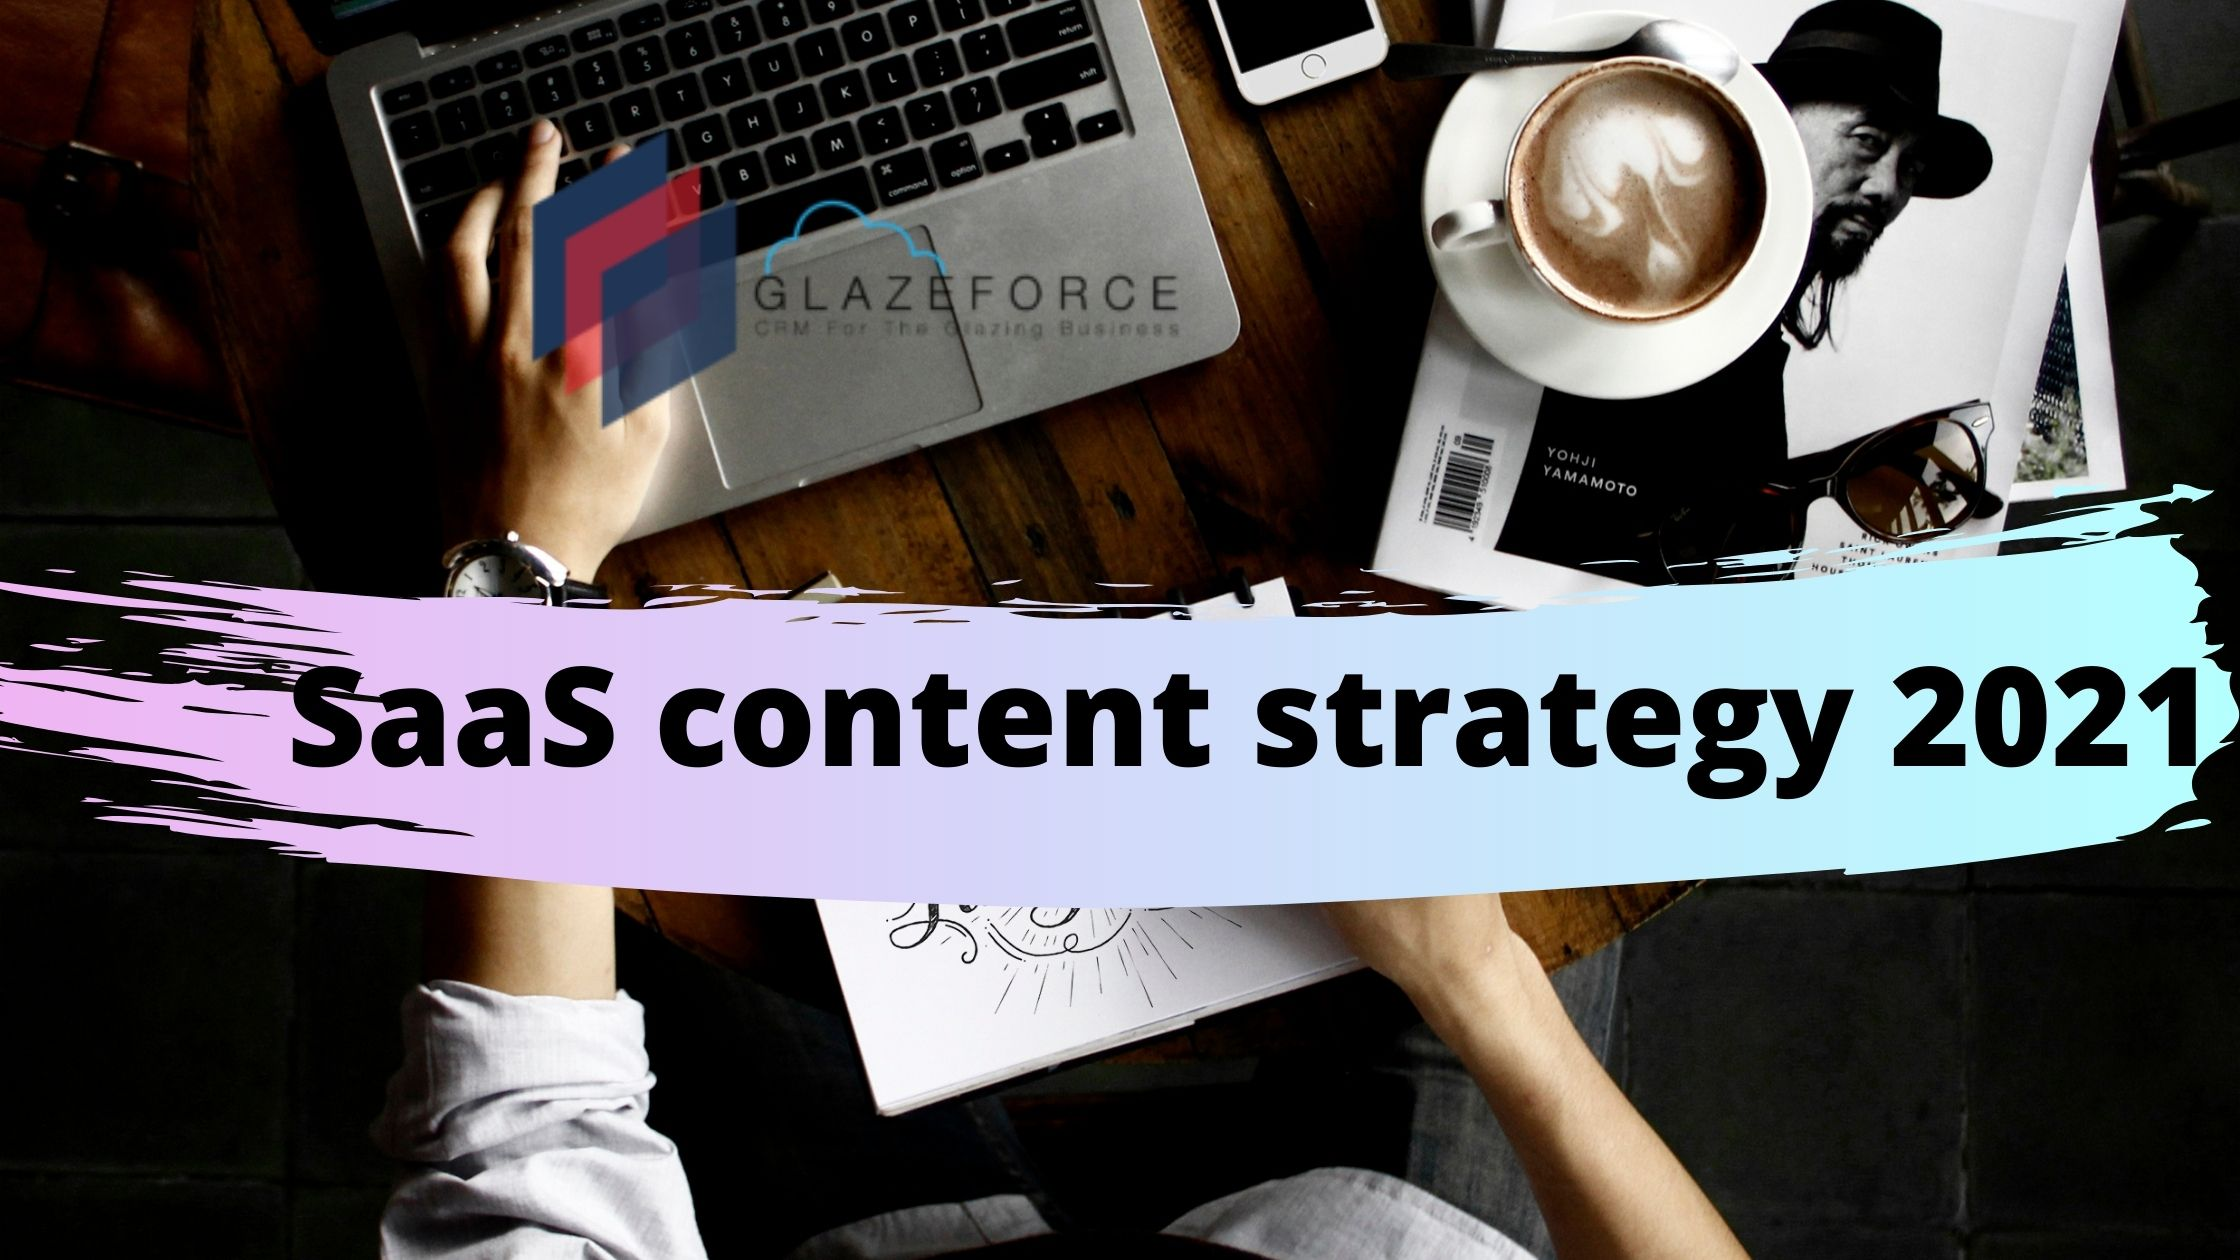 Tips to build an effective SaaS content strategy in 2021